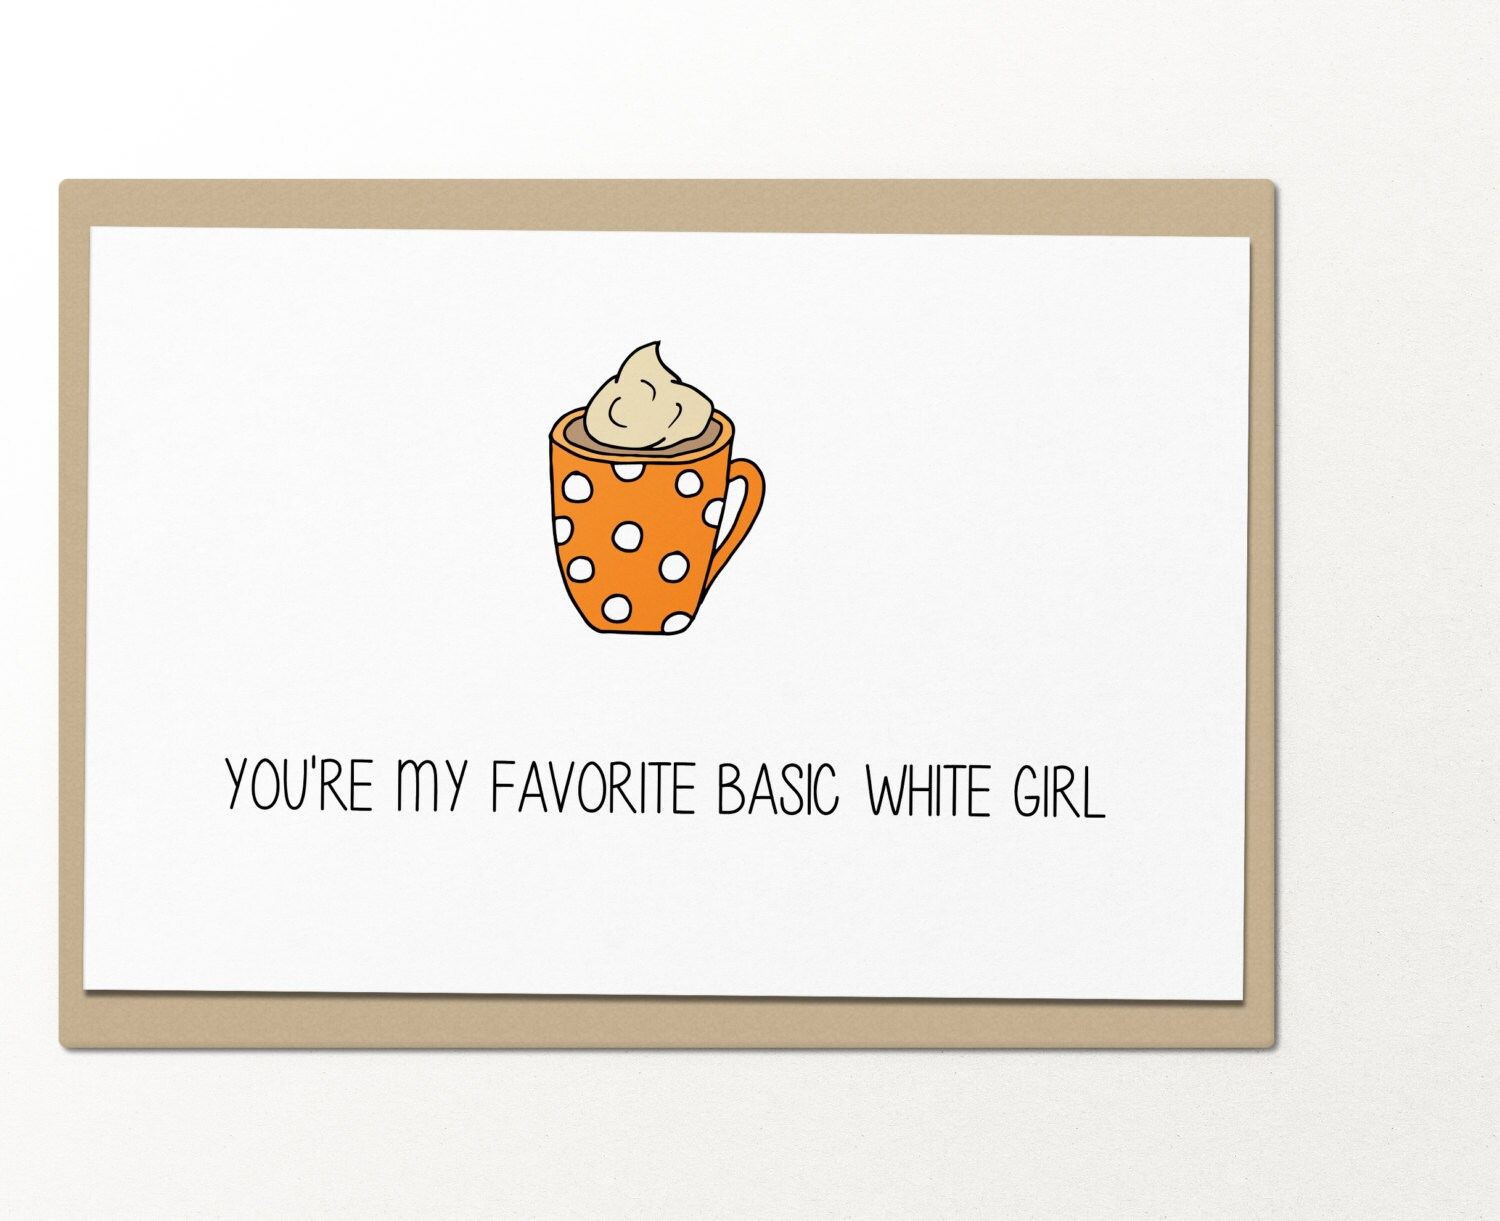 Youre my favorite basic white girl greeting card funny zoom kristyandbryce Gallery